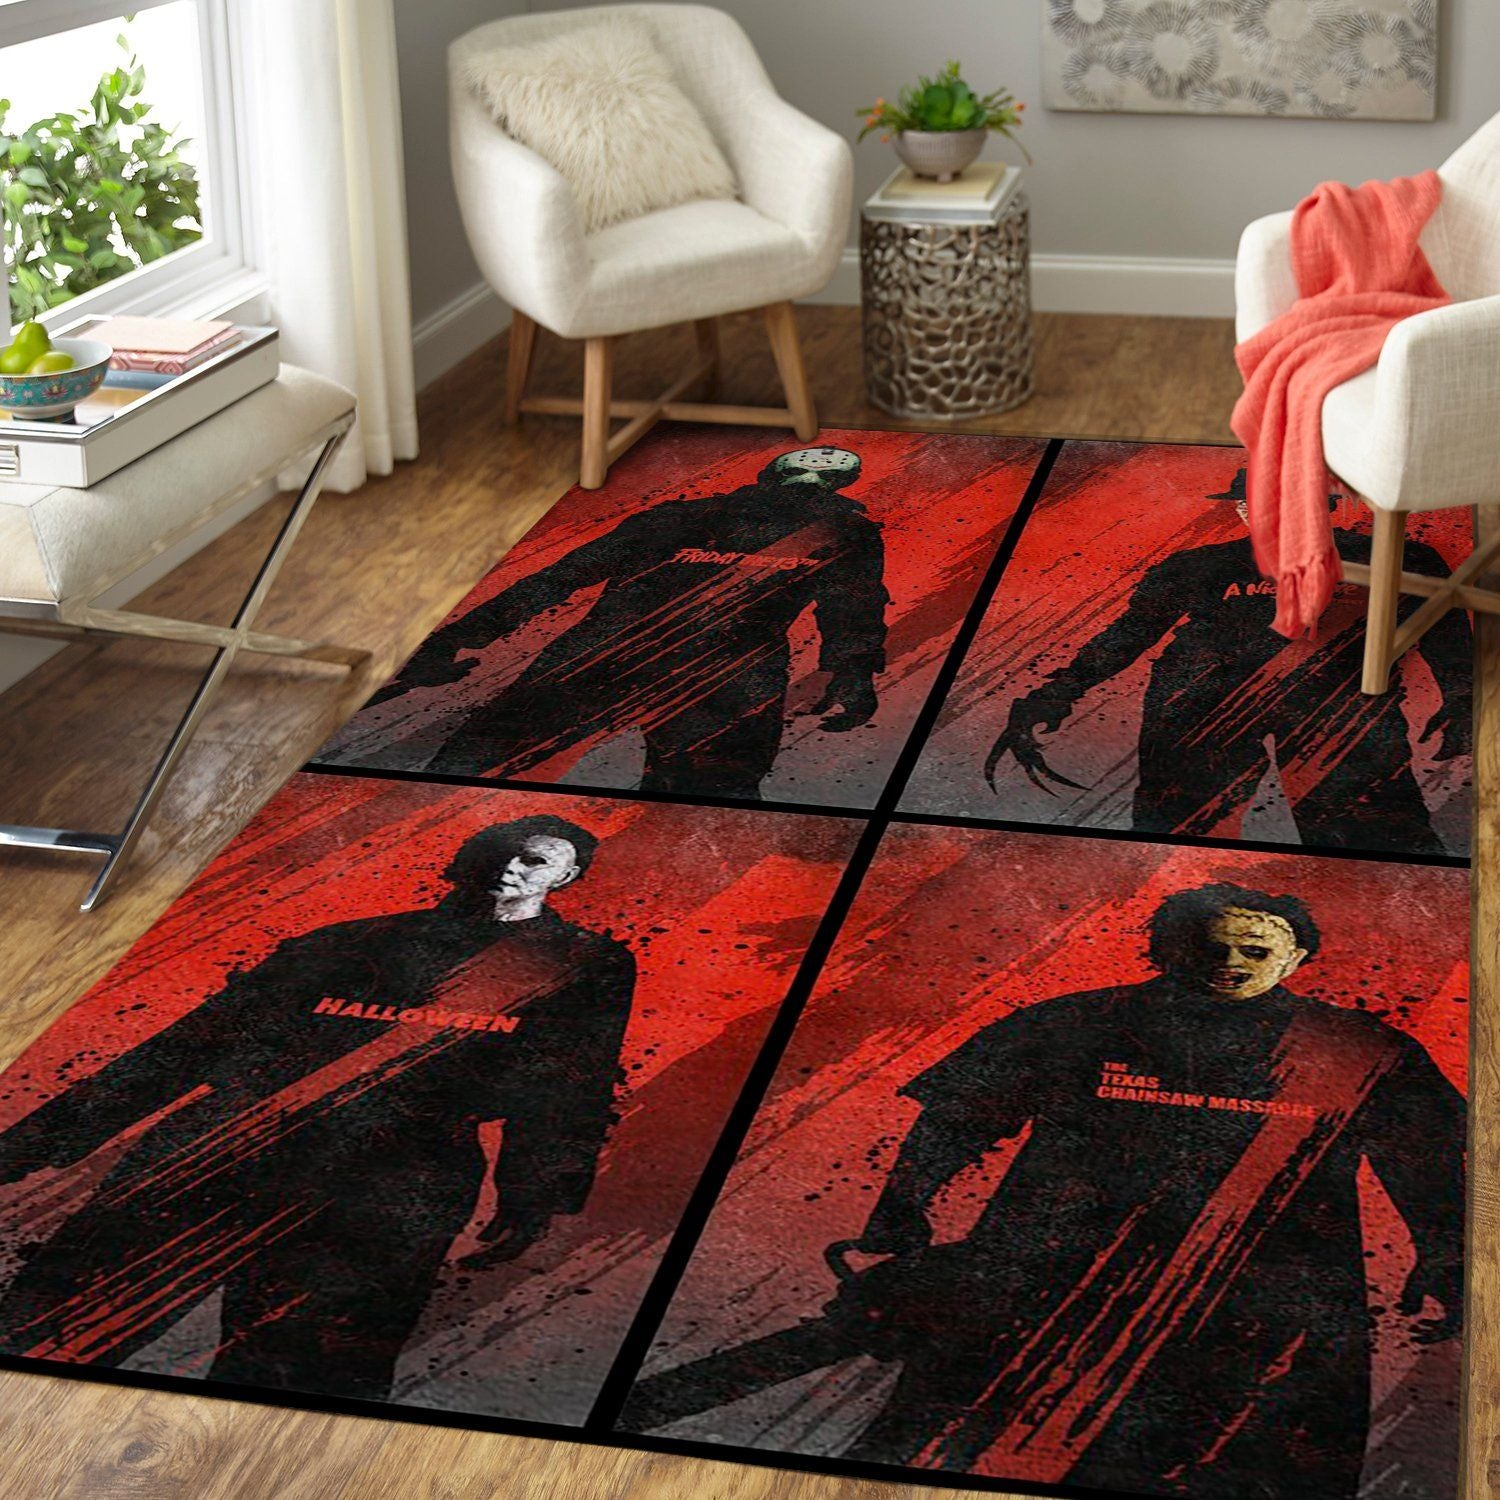 F.R.I.E.N.D.S - Murderverse 4CH290830 Area Rug - Movie Floor Decor